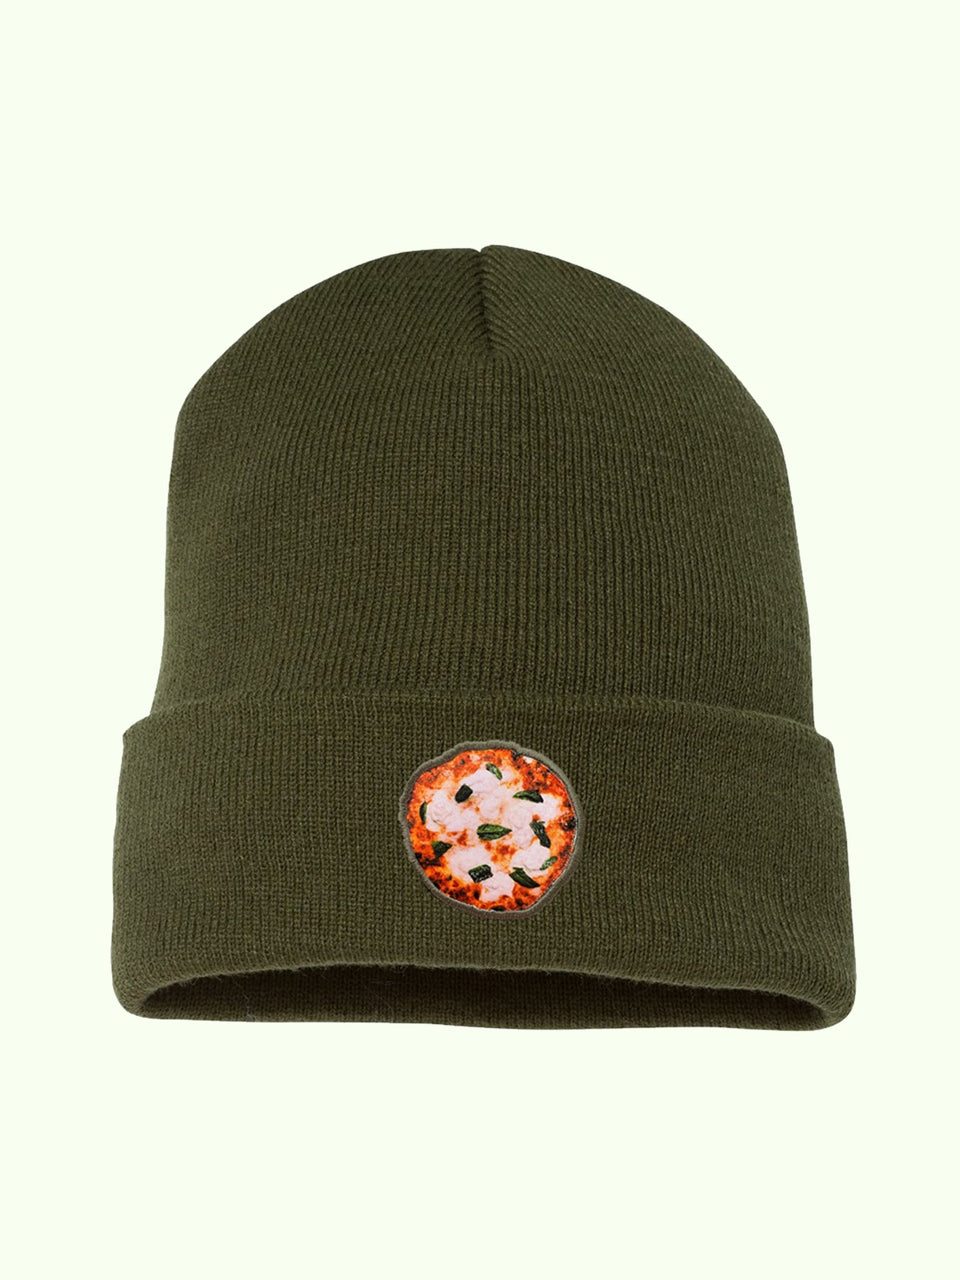 "Pizza Beanie in ""Olive"" (Ships in 1-2 Weeks) - MR EATWELL"